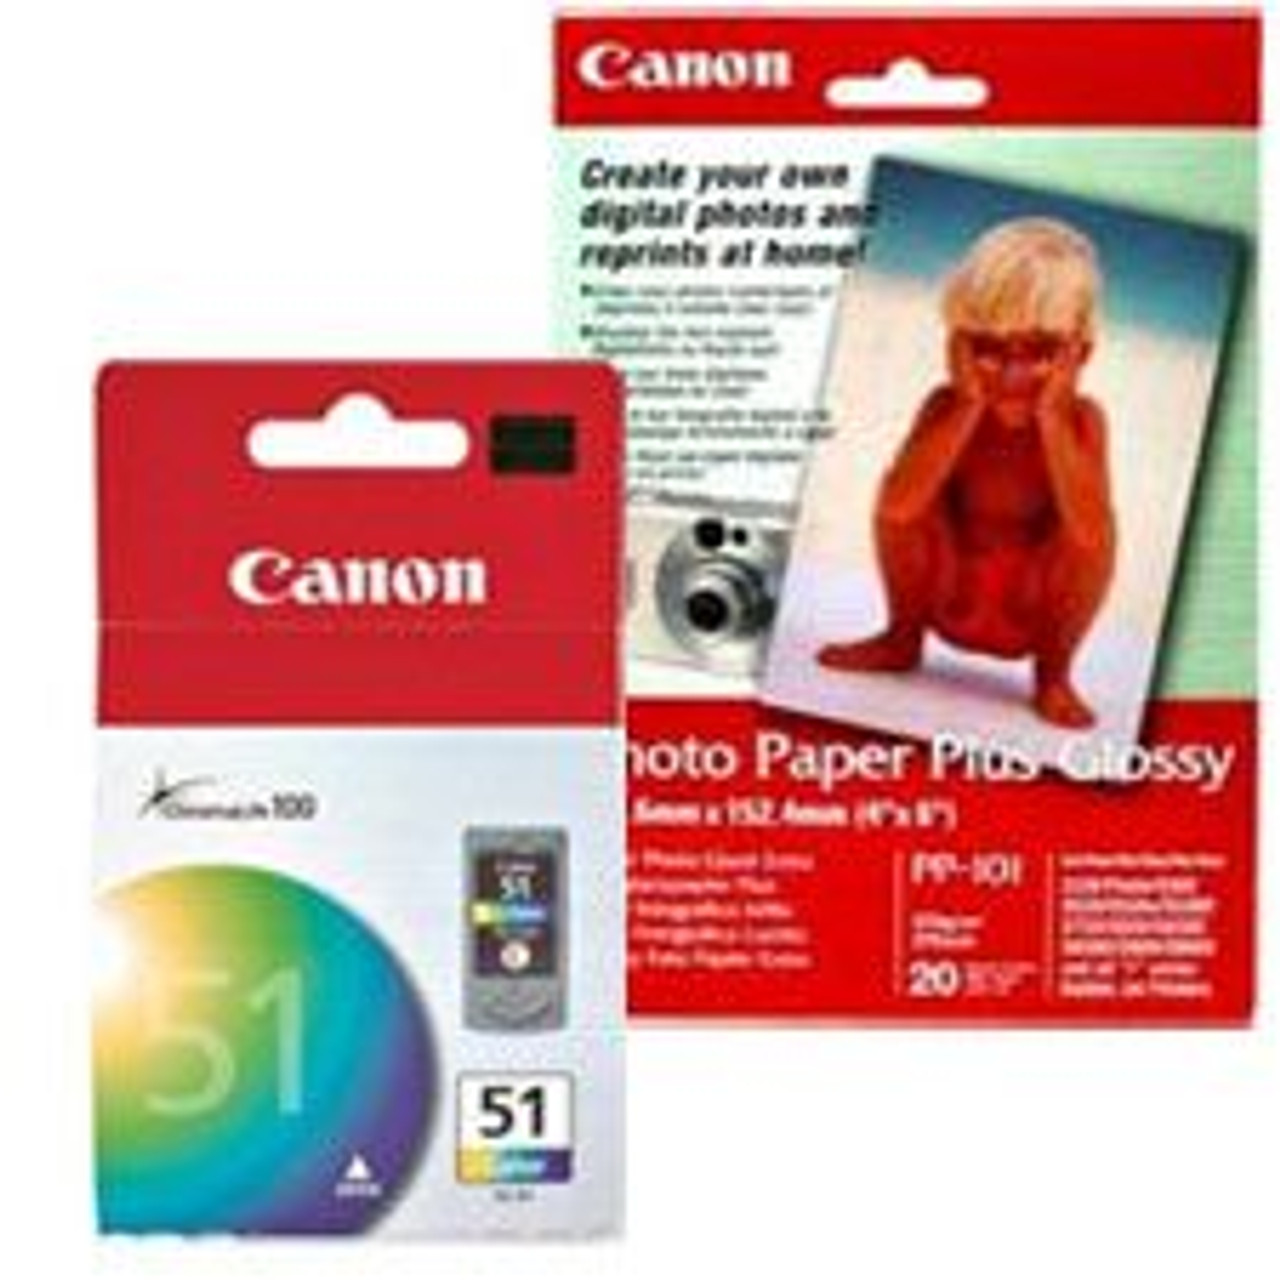 Image for Canon CL-51 Value Pack 1 x CL51 High-Capacity Color Ink CX Computer Superstore